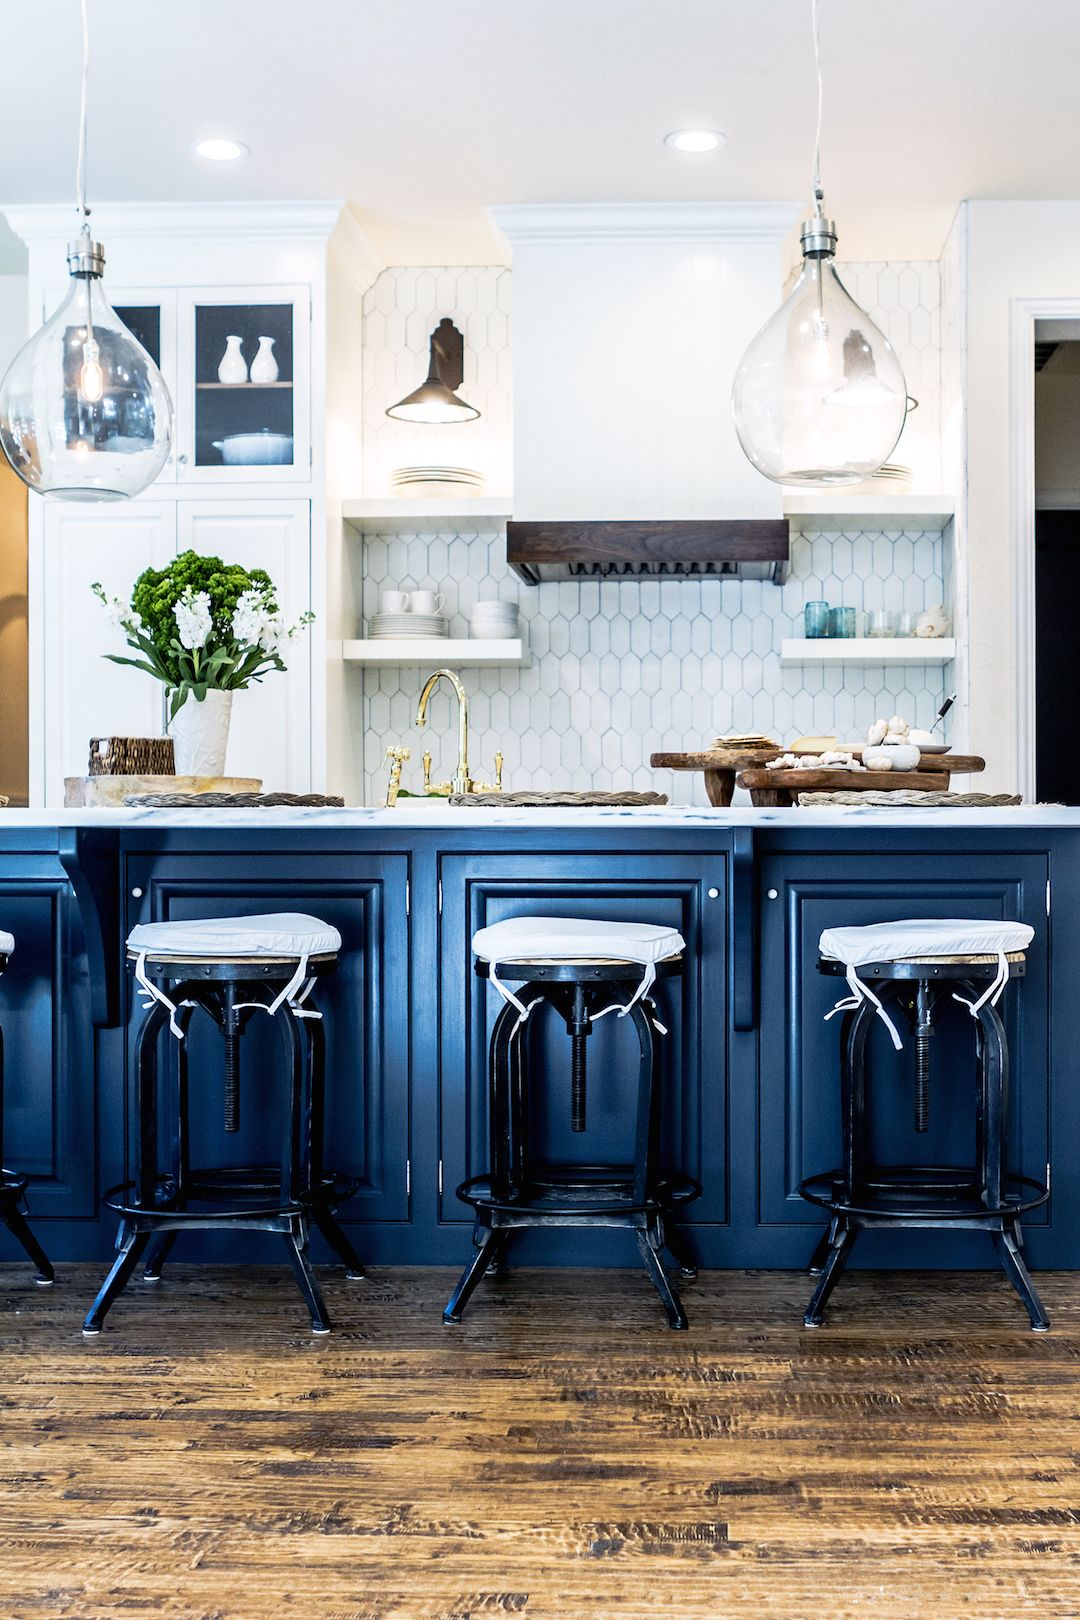 Kitchen blues navy kitchen kitchens and navy for Navy blue kitchen cabinets